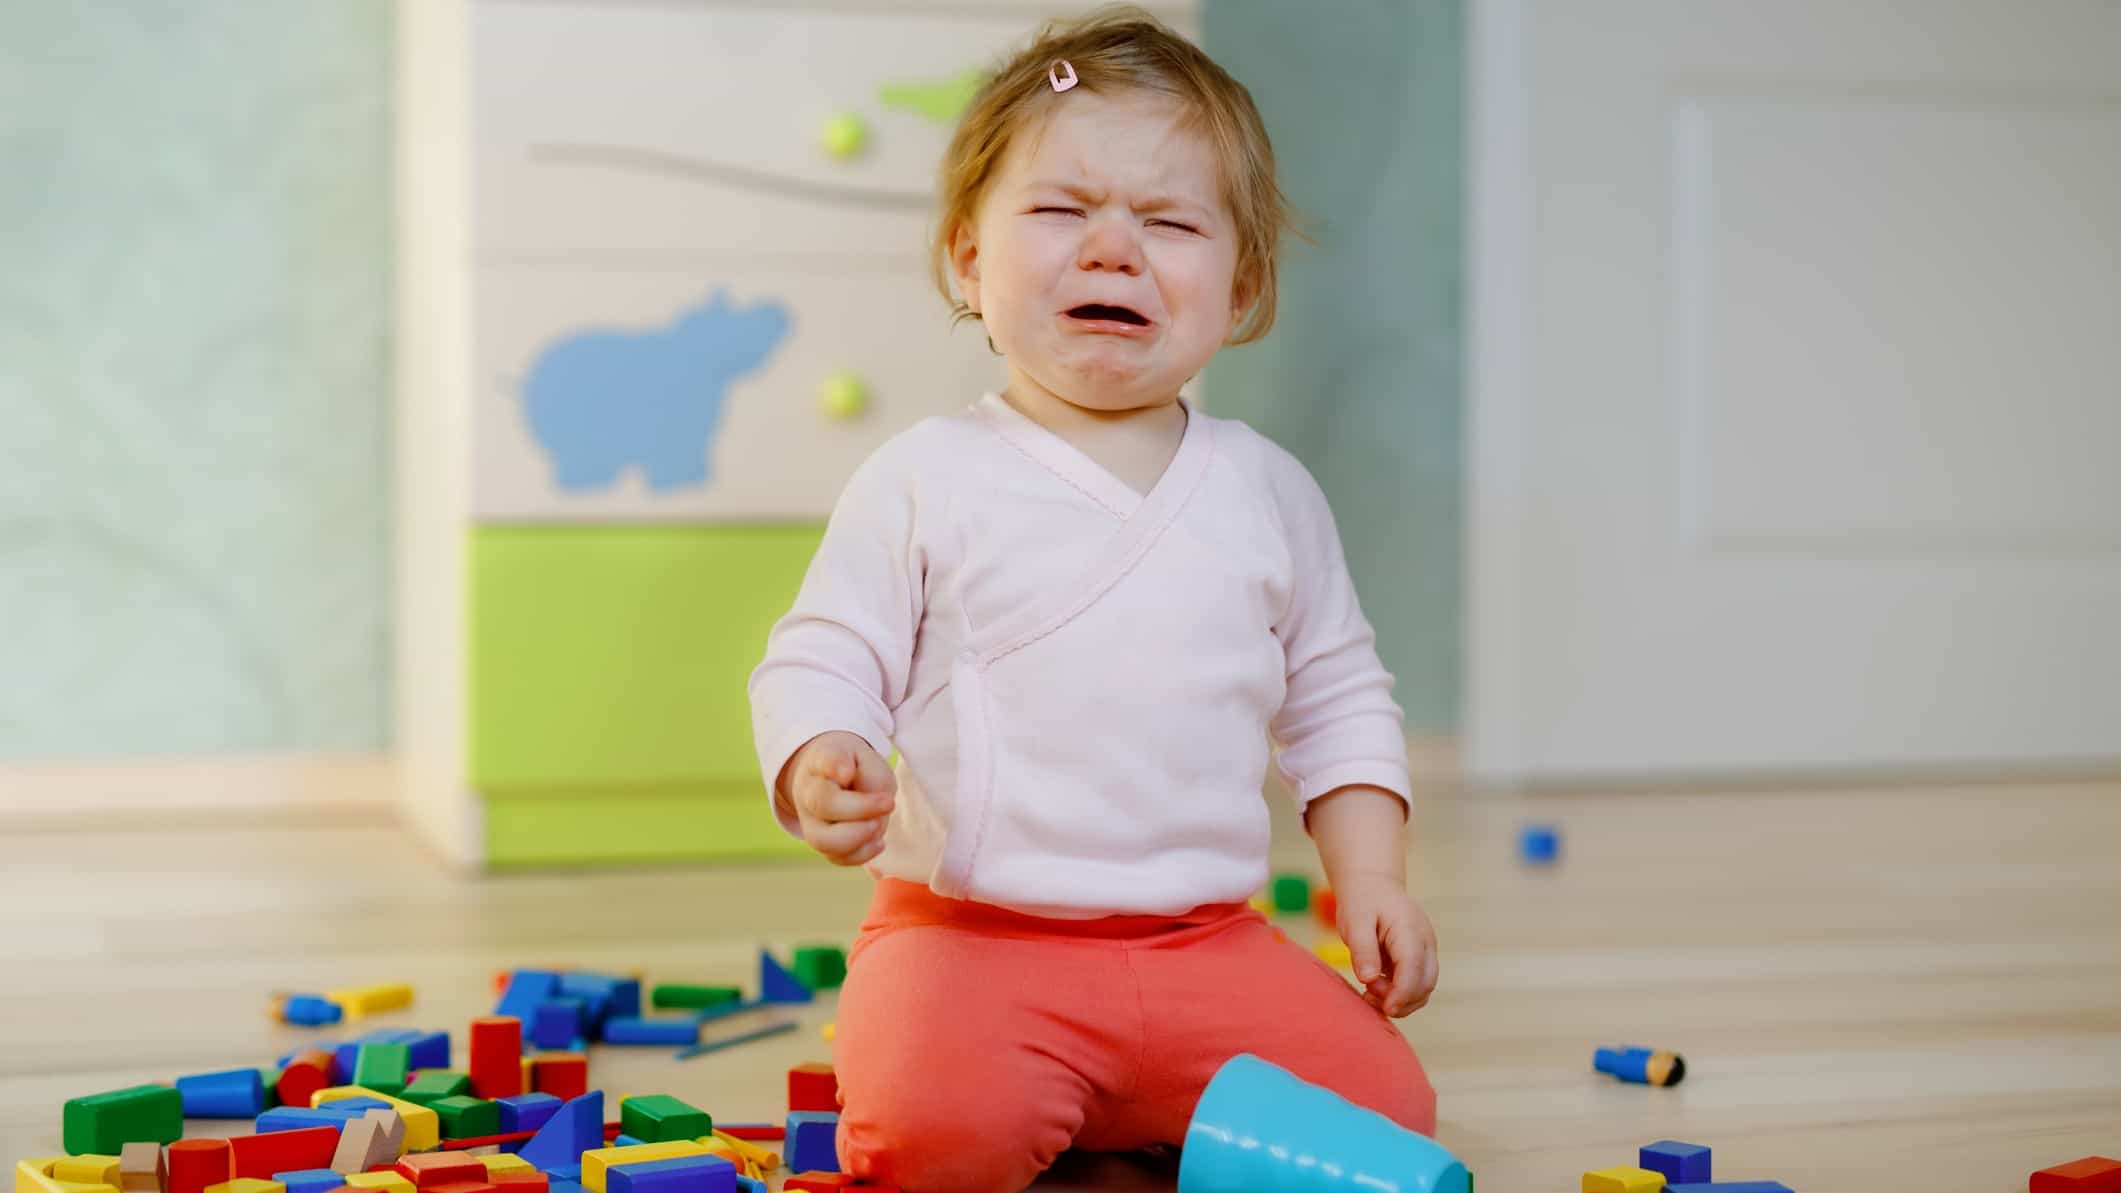 A little kid cries in frustration because her blocks fell over and broke.